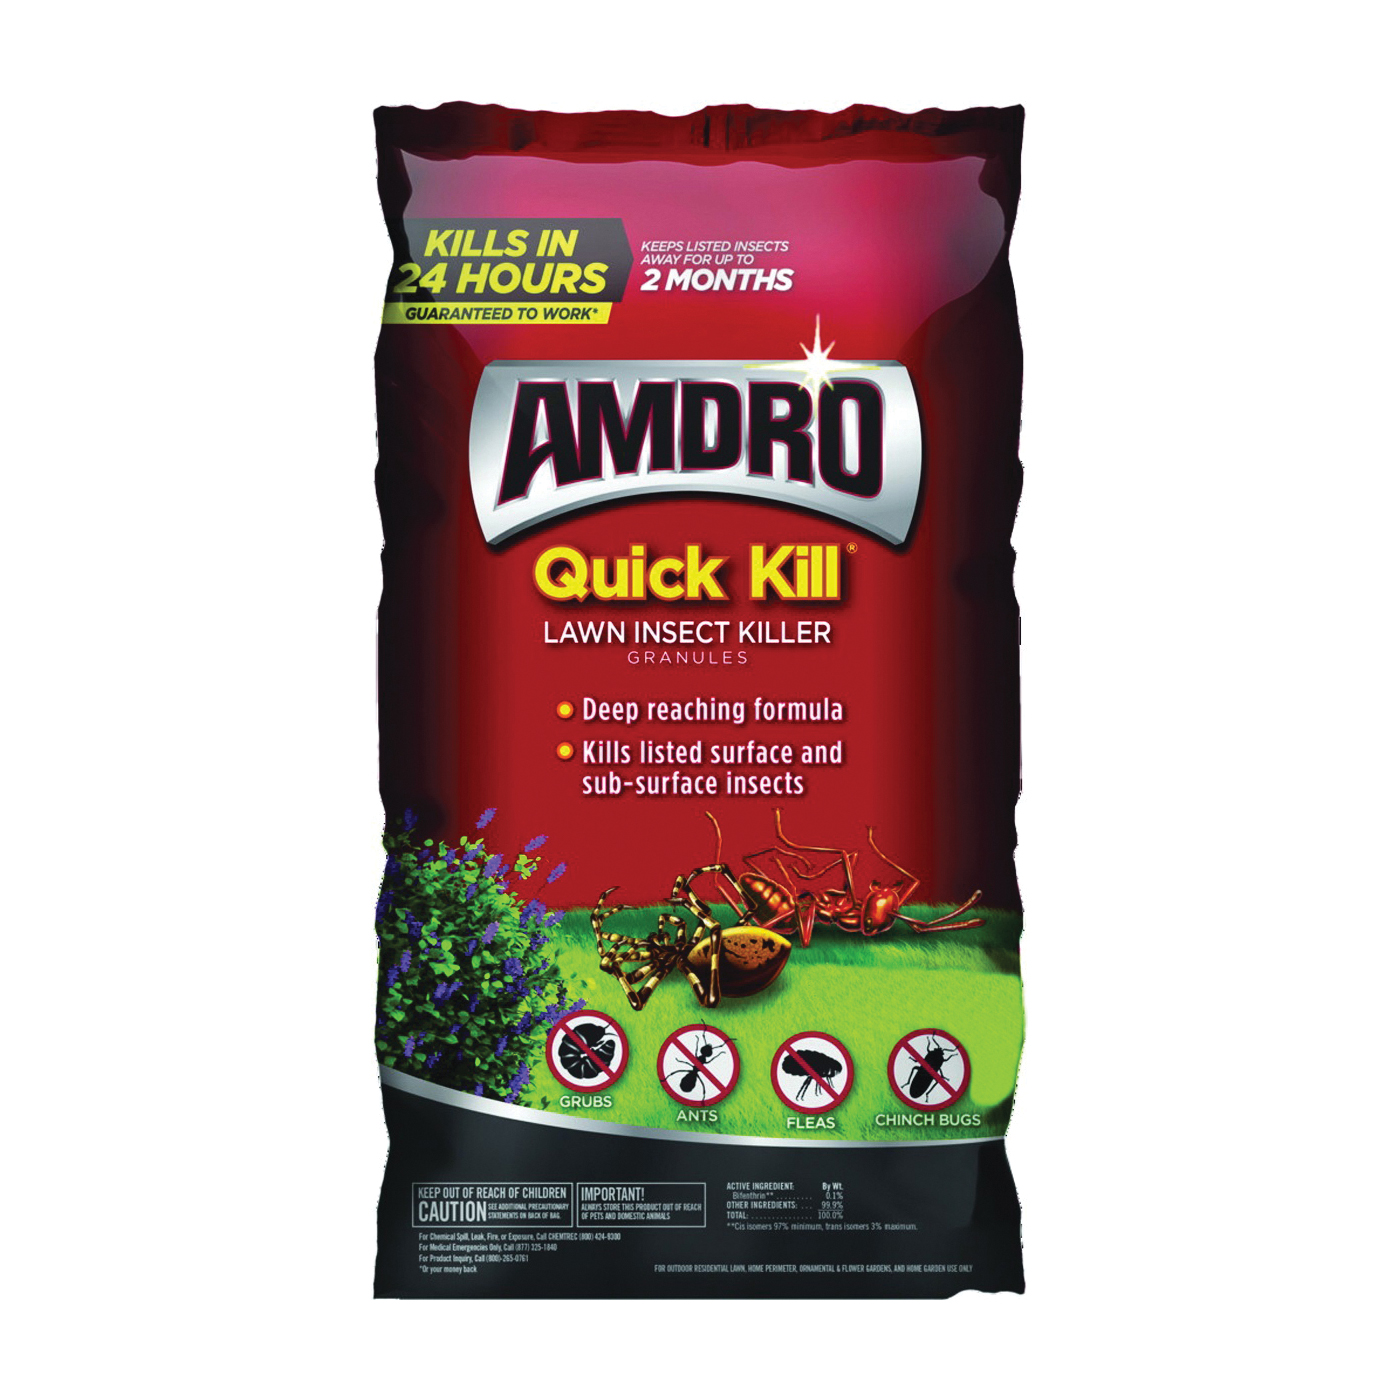 Picture of Amdro QUICK KILL 100527997 Lawn Insect Killer, 20 lb Package, Bag